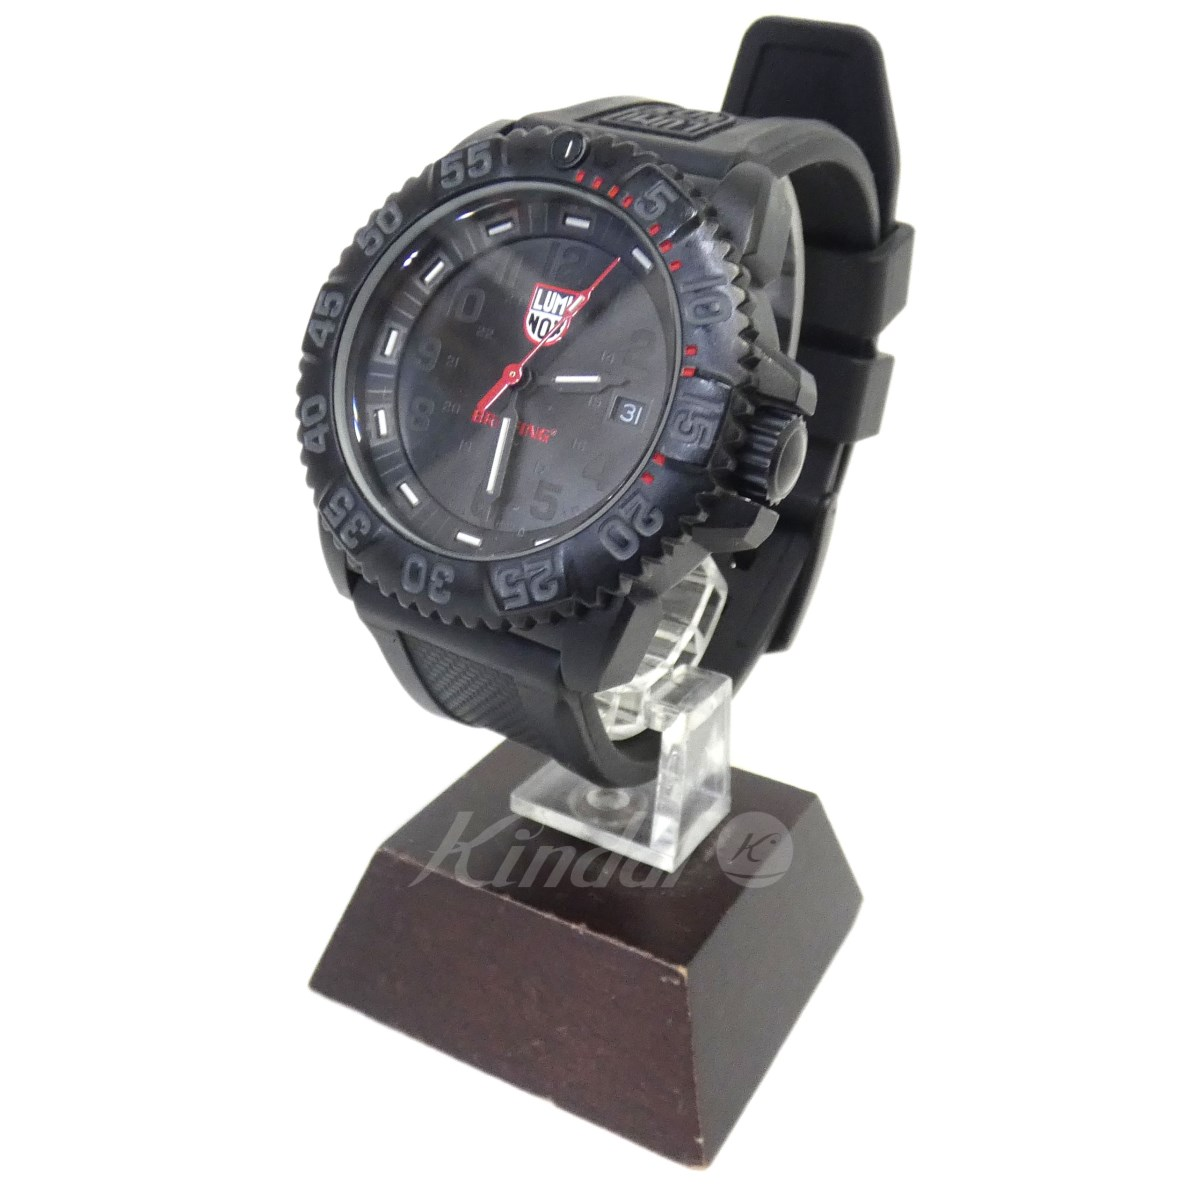 【中古】LUMINOX × BRIEFING 「Ref. 3051. BO BRIEFING LTD」SERIS 3050 141/250 腕時計 【送料無料】 【069338】 【KIND1489】